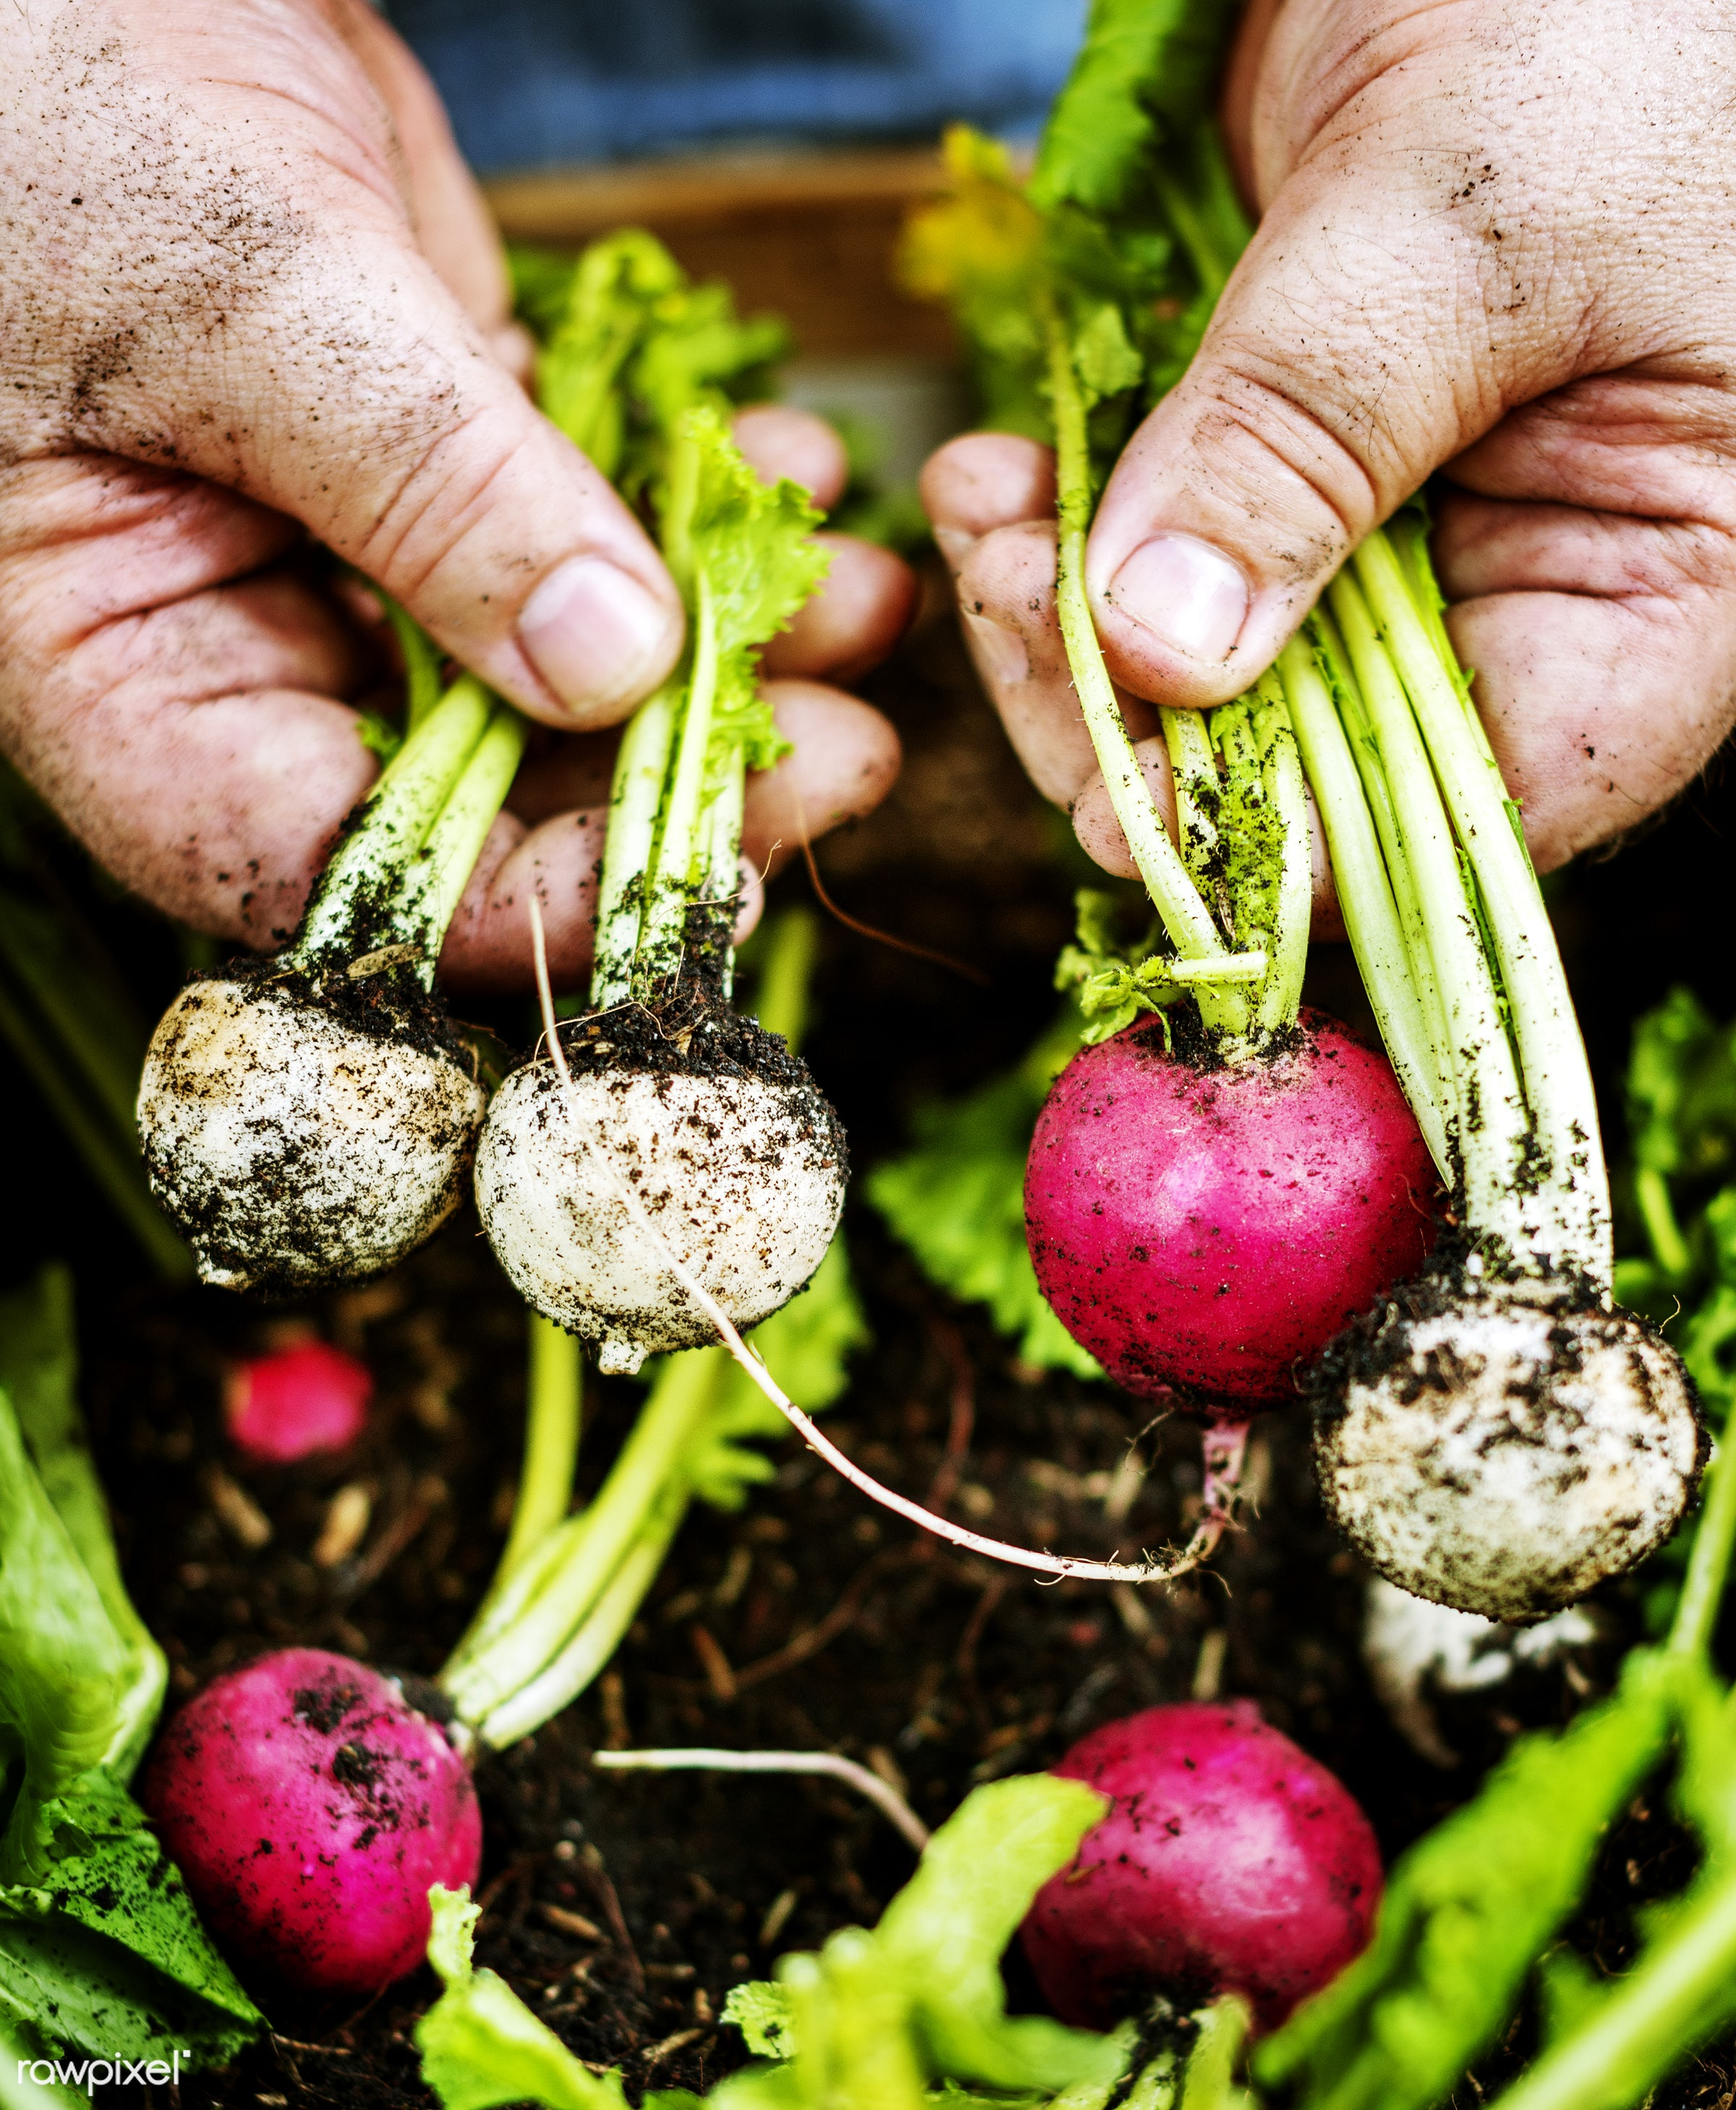 A person handling beets - raw, diverse, farm, ingredients, farmer, nature, fresh, hands, dirt, products, closeup,...